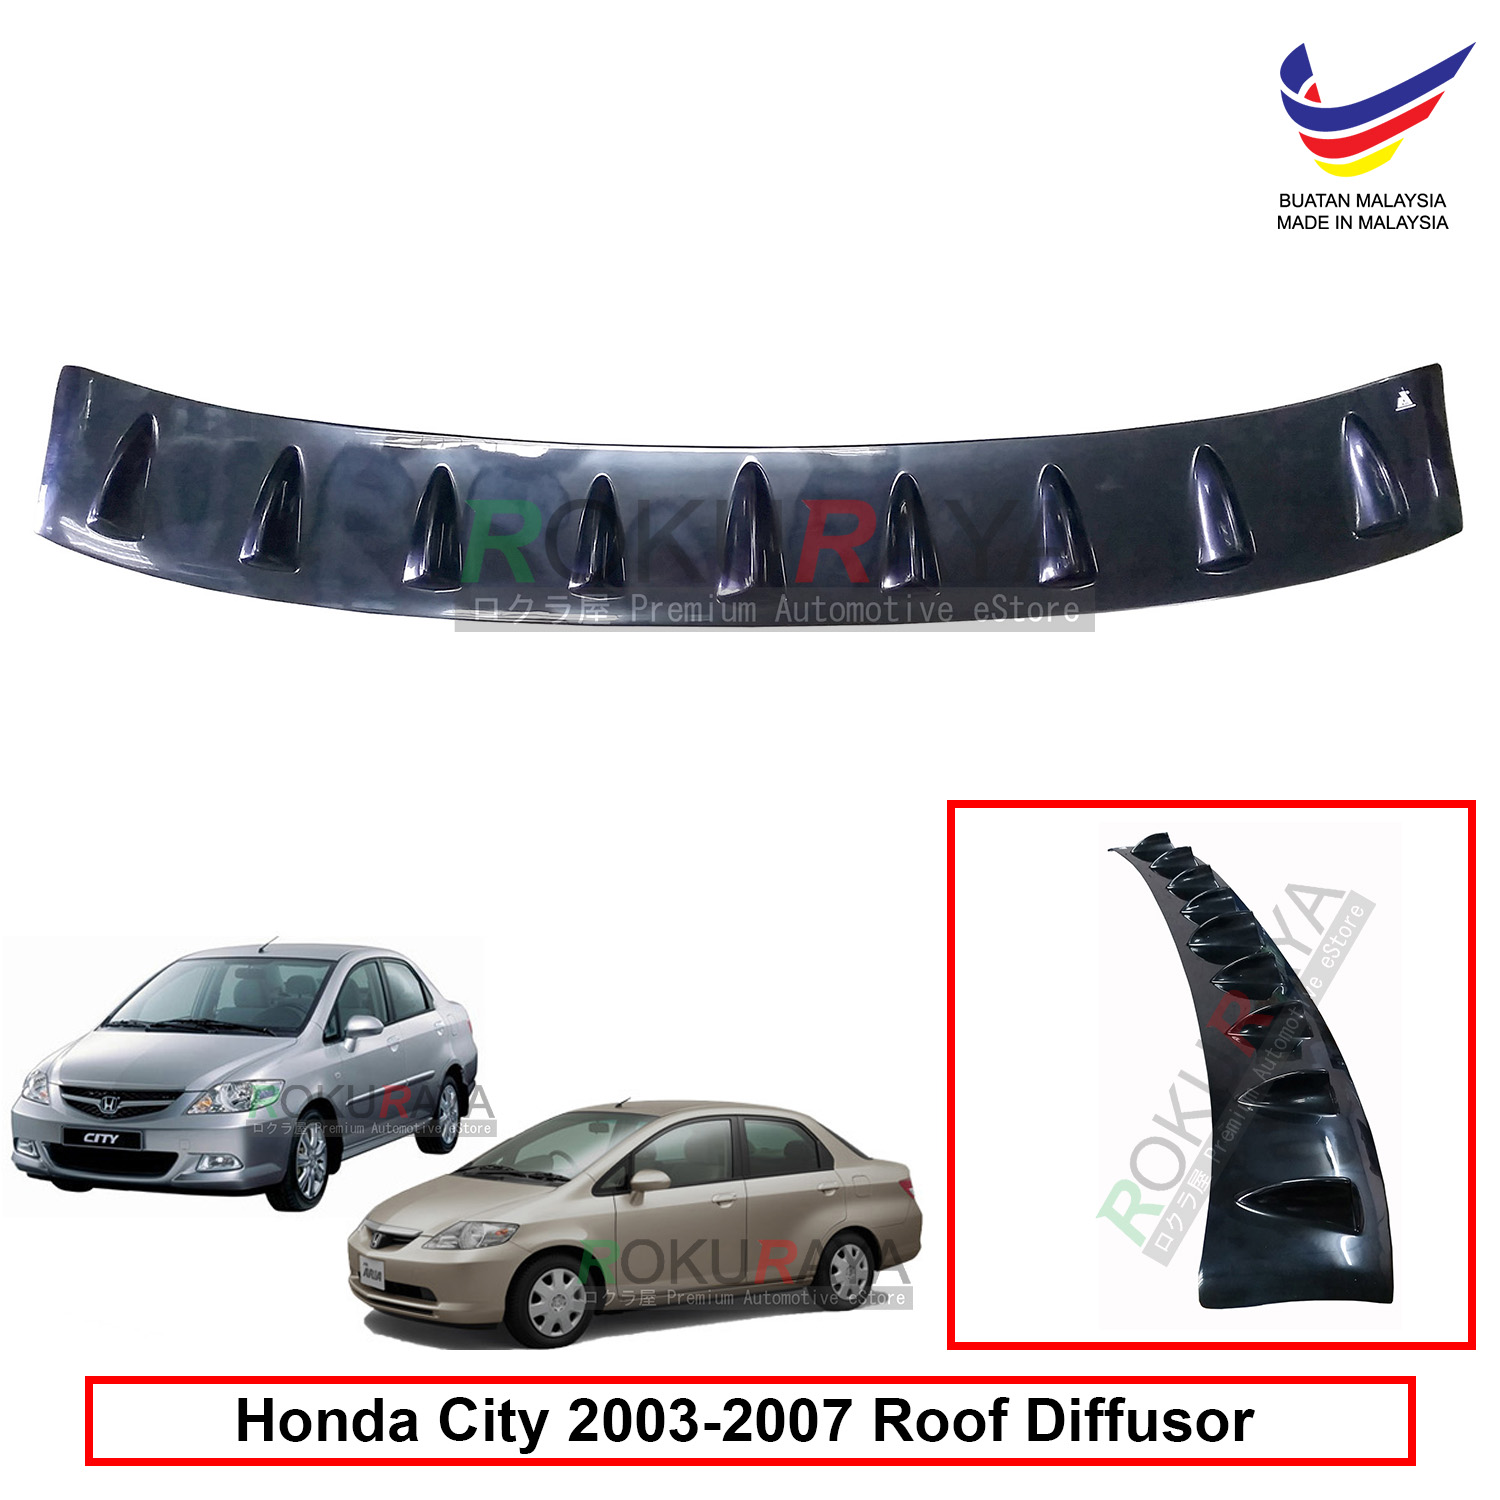 Honda City (4th Gen) 2002 Vortex Generator Shark Fin Roof Diffuser